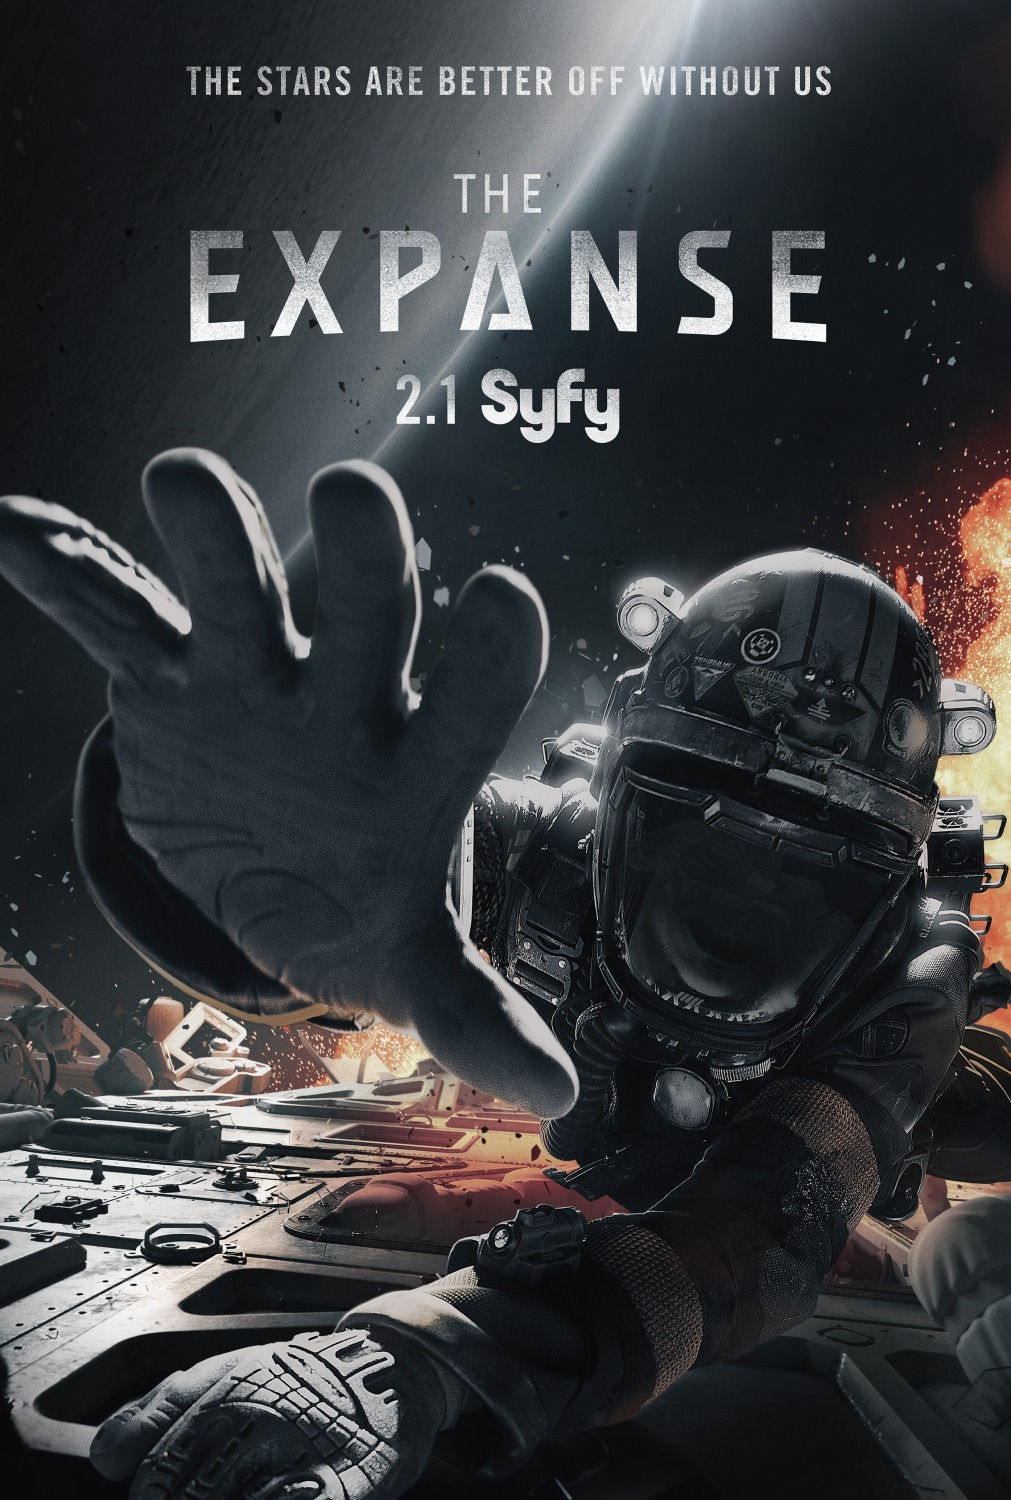 The Expanse (S01 - S05)